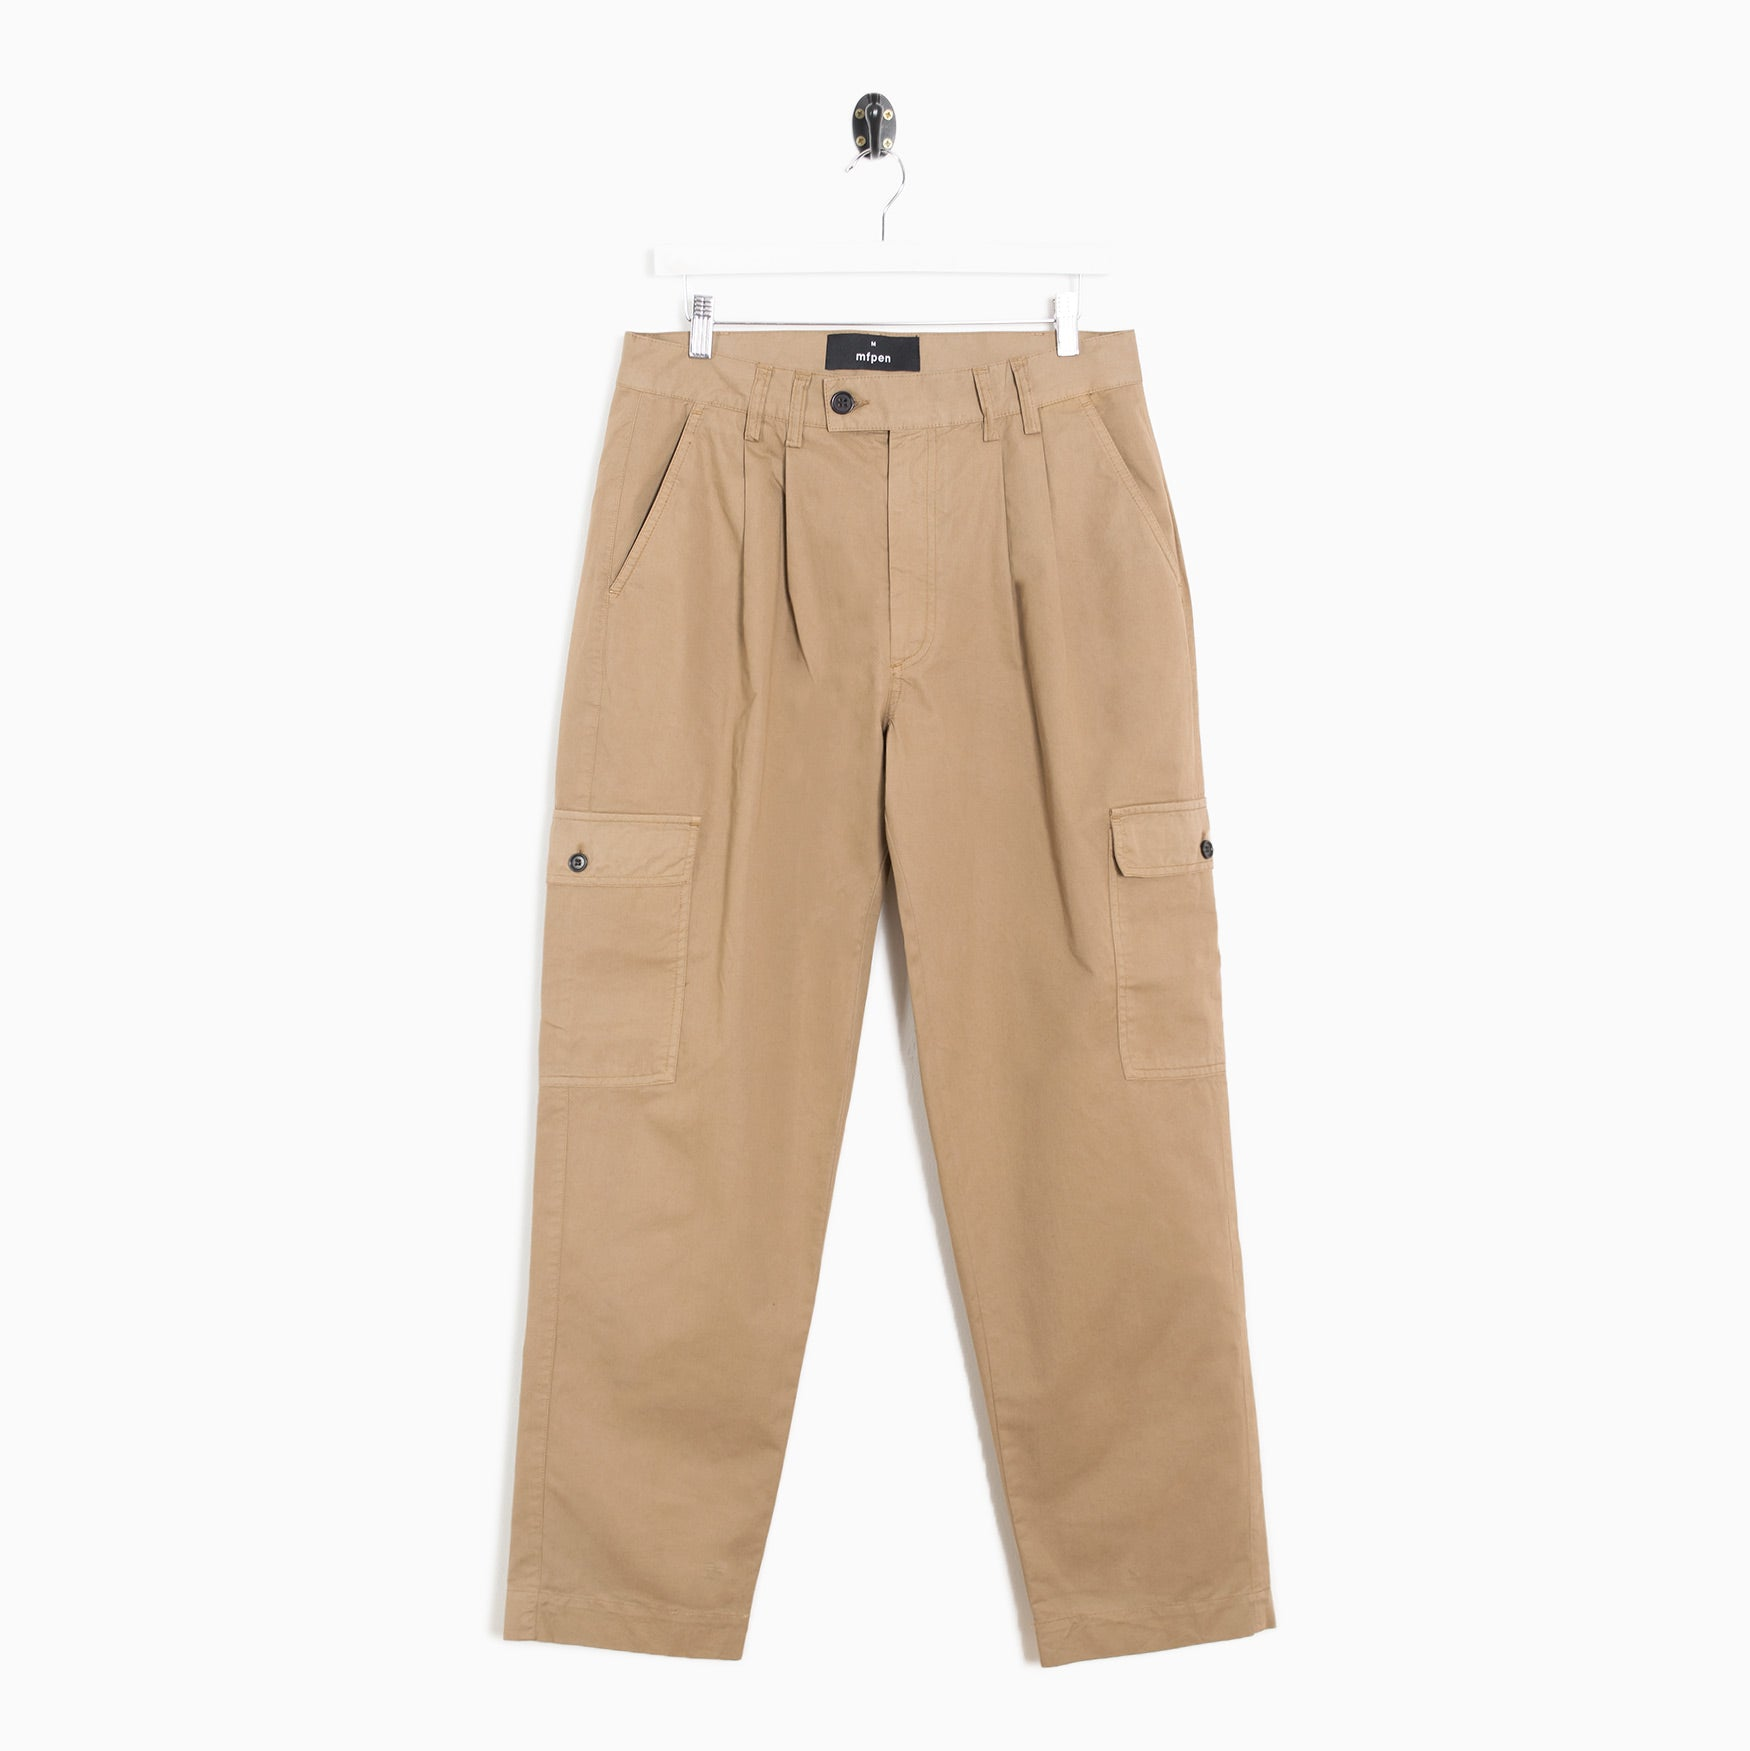 mfpen Work Trouser - Khaki